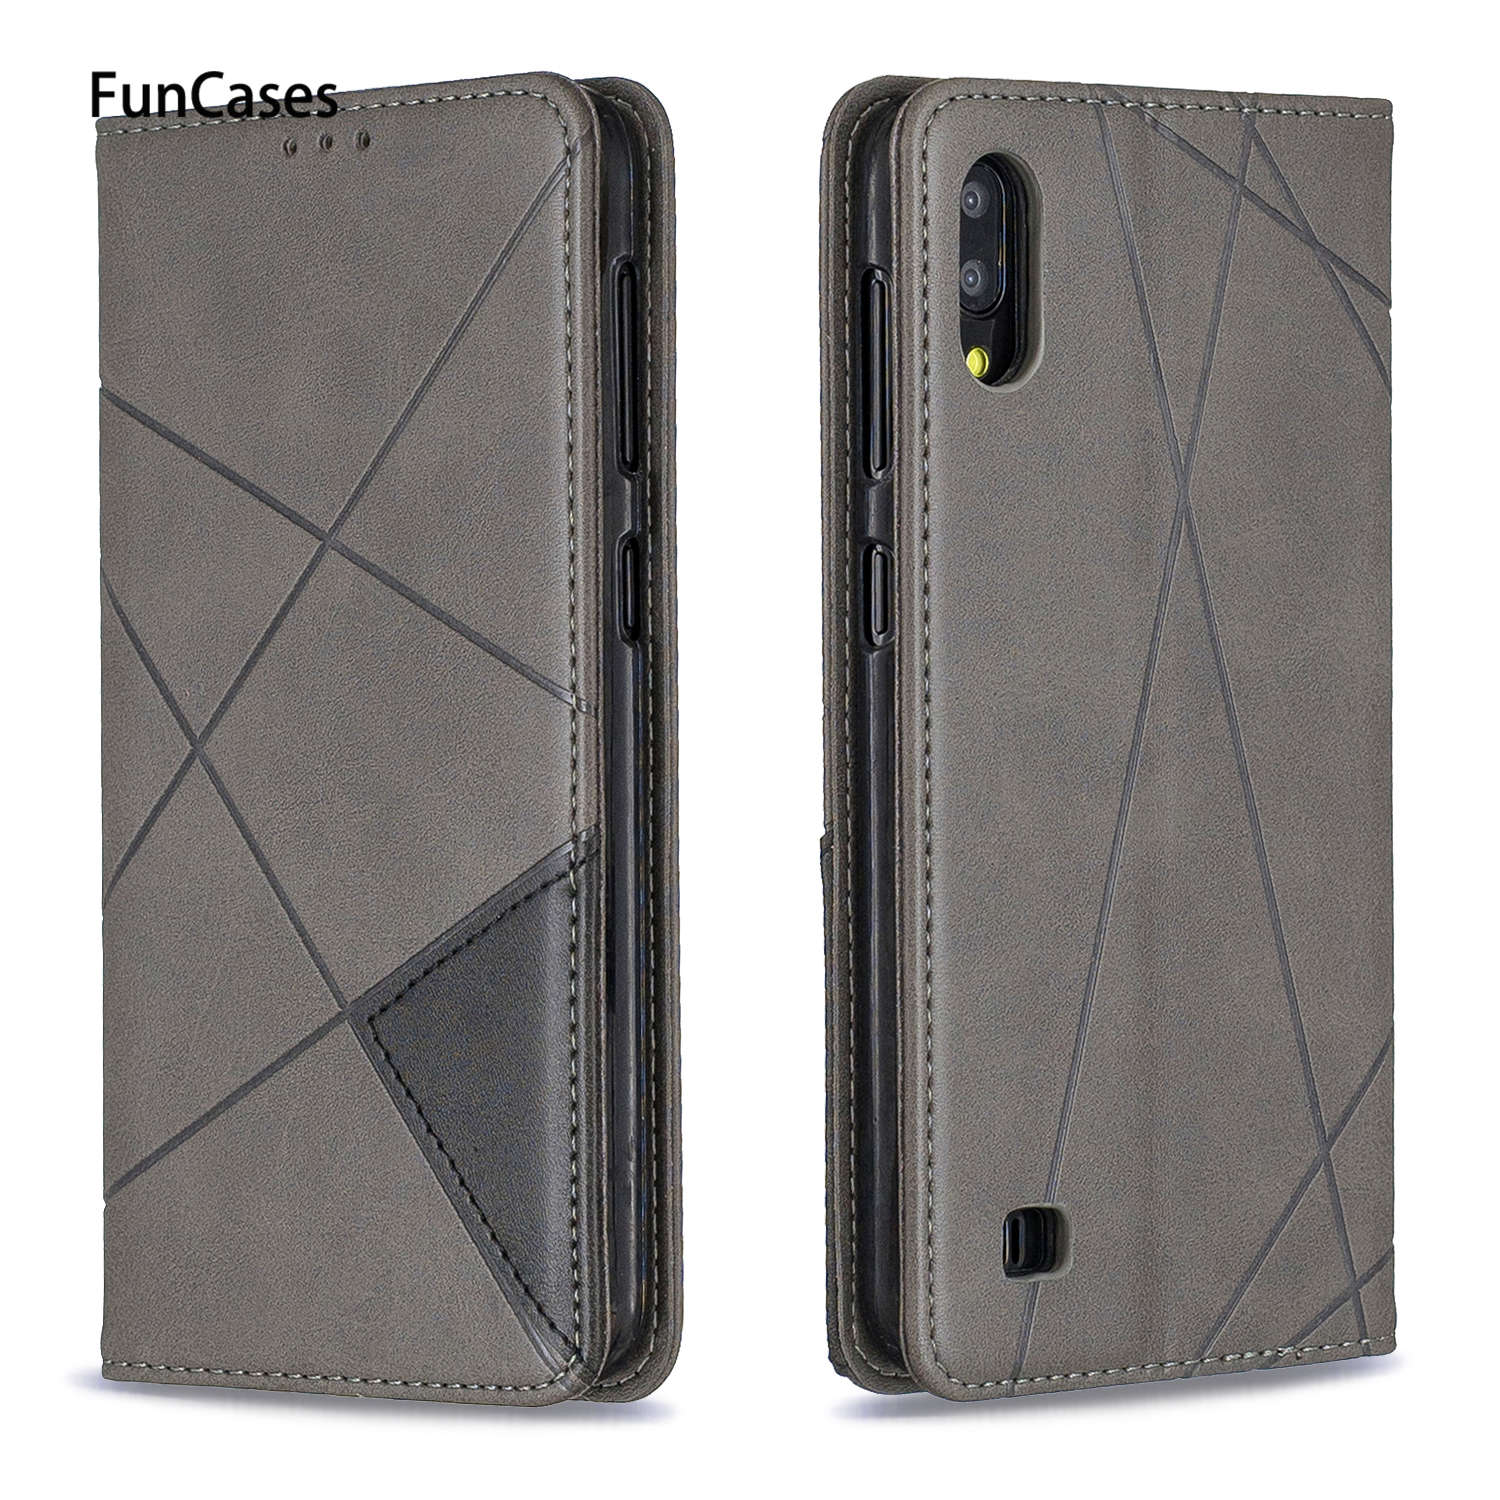 Diamond Flip Wallet Case Book For capinha <font><b>Samsung</b></font> A20 Telephone Carcaso sFor <font><b>Samsung</b></font> <font><b>hoesje</b></font> A10 A30 A40 A50 <font><b>A70</b></font> Cellphone Cases image